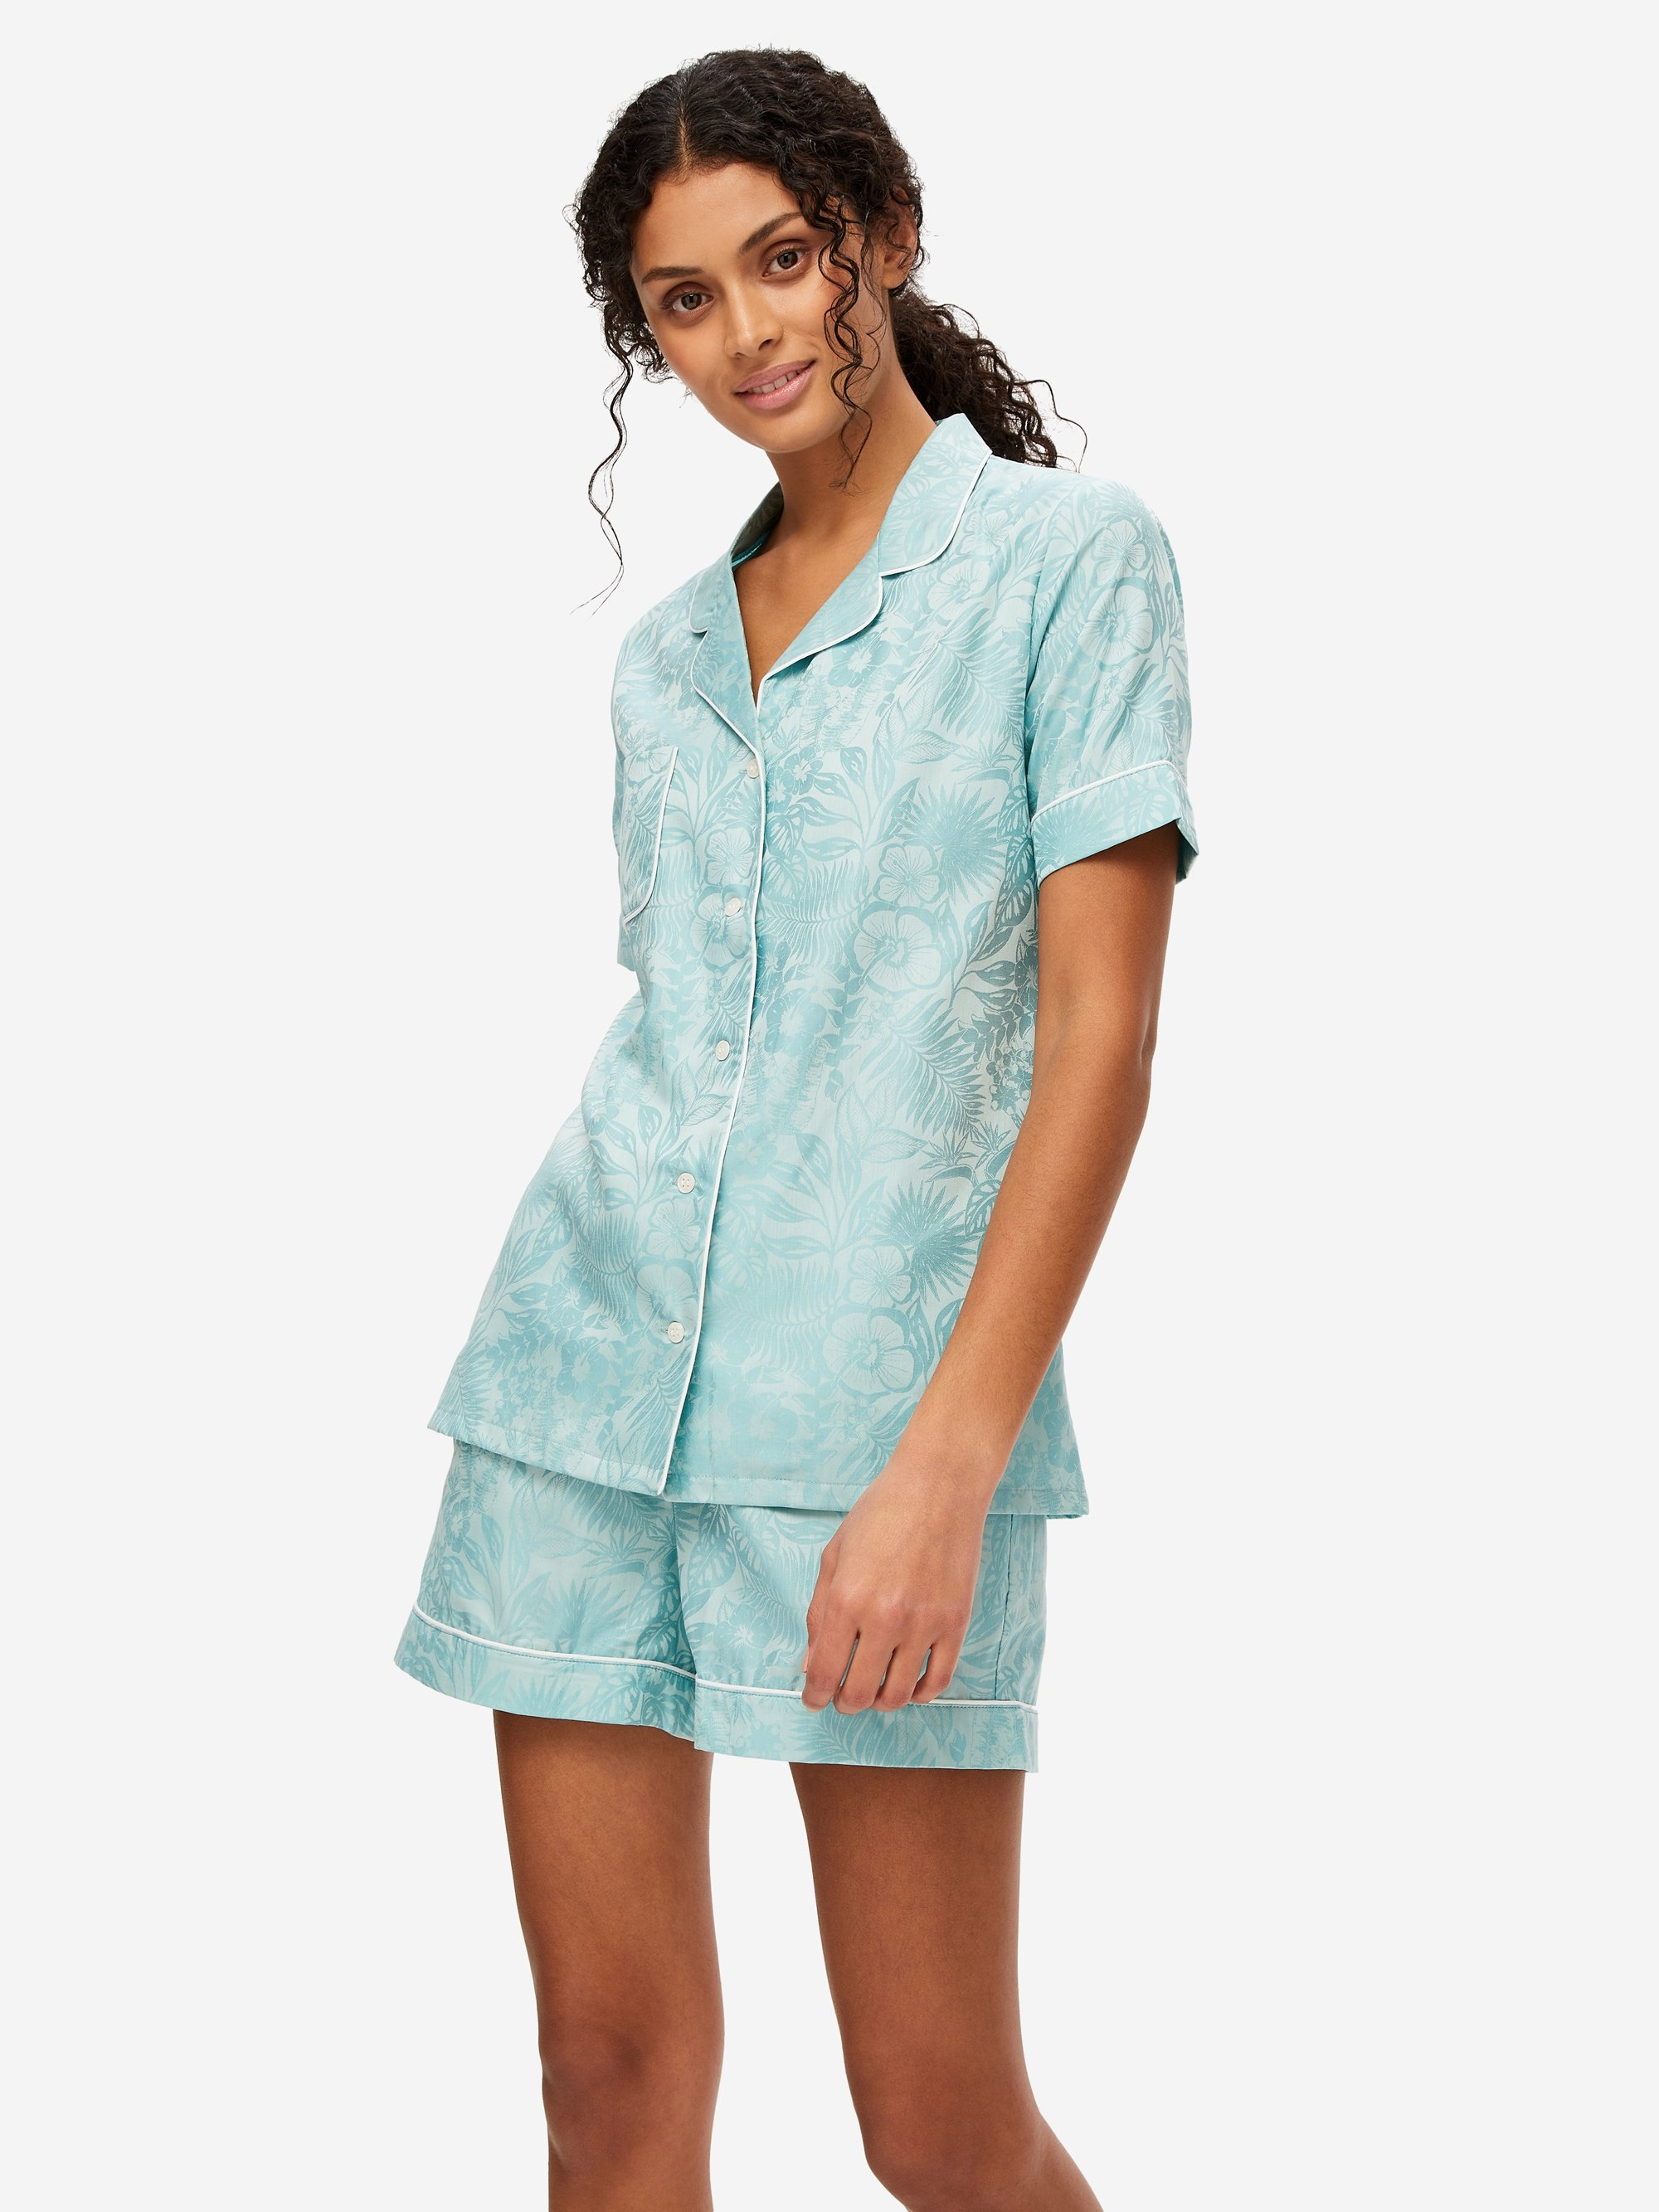 Women's Shortie Pyjamas Paris 19 Cotton Jacquard Mint